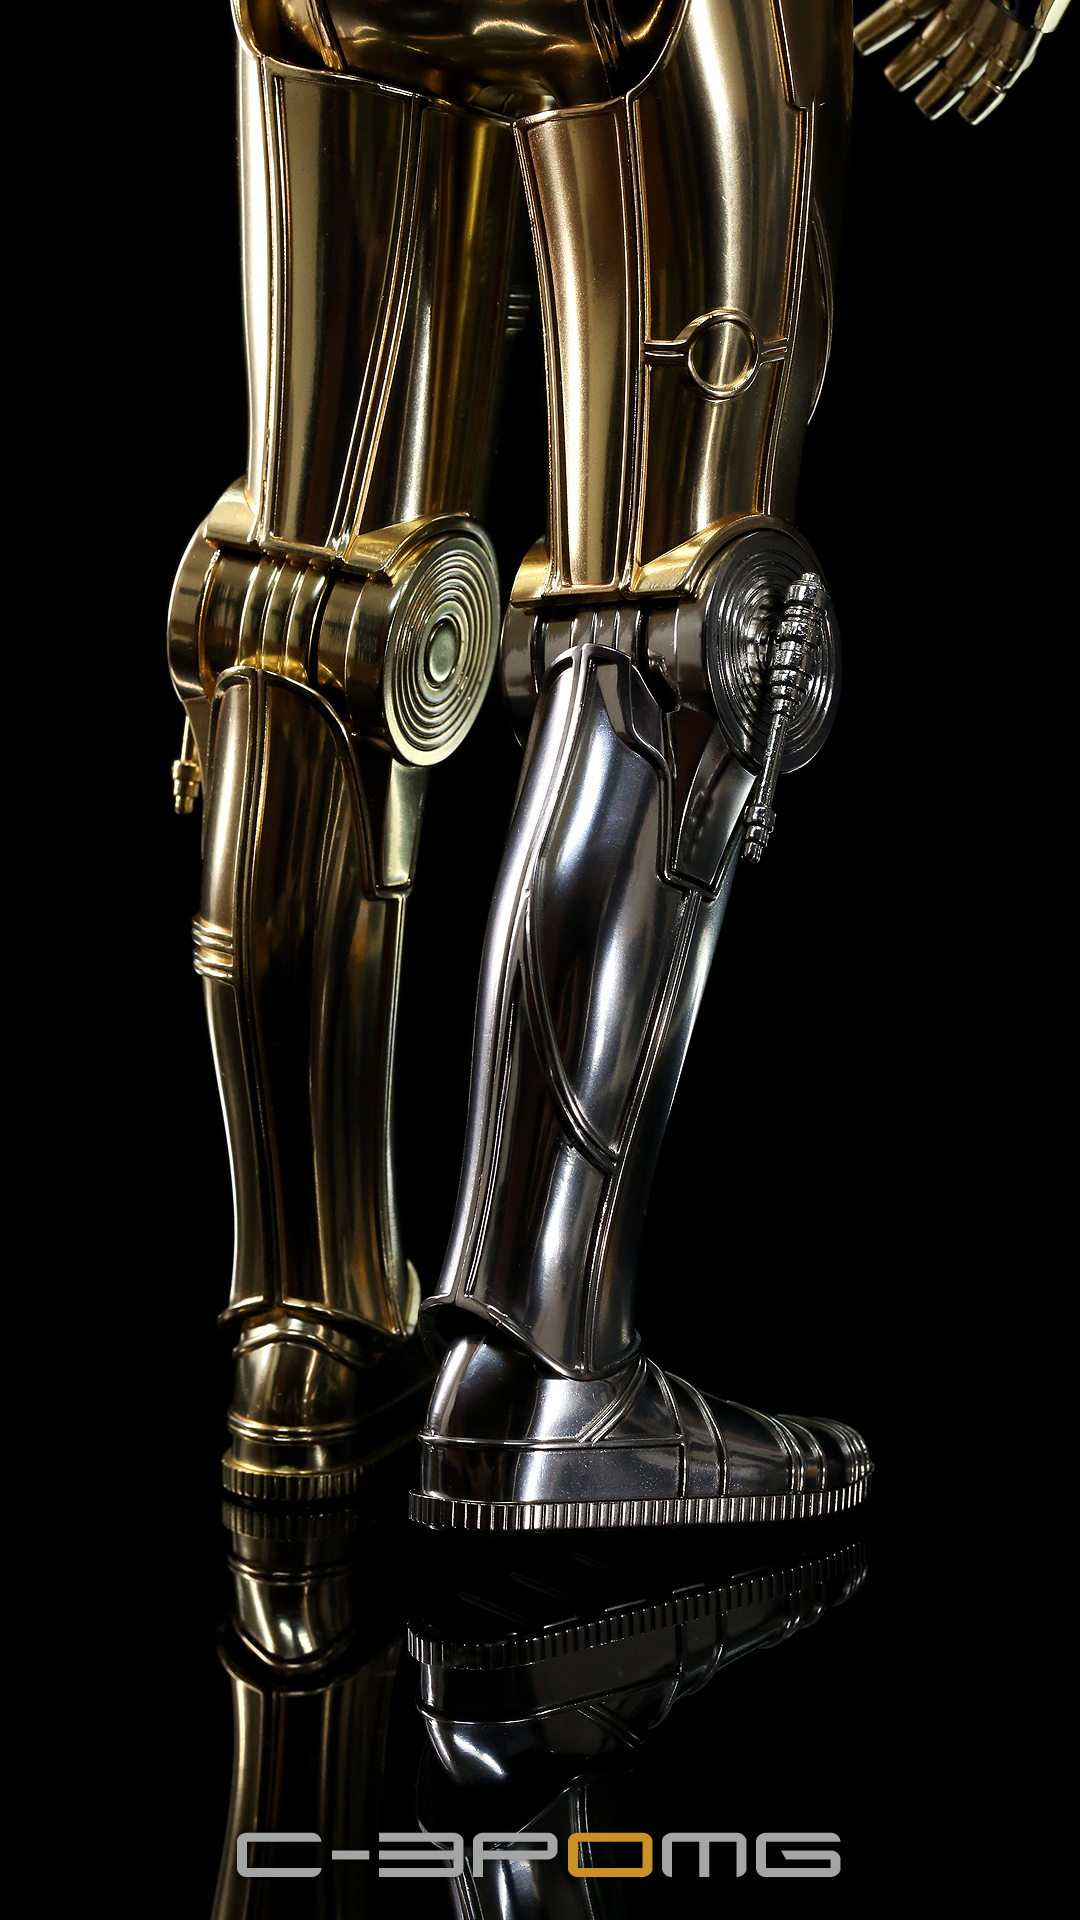 [Bandai] Star Wars: C-3PO - Perfect Model 1/6 scale - LANÇADO!!! - Página 2 C-3PO1137_zps133f0c21